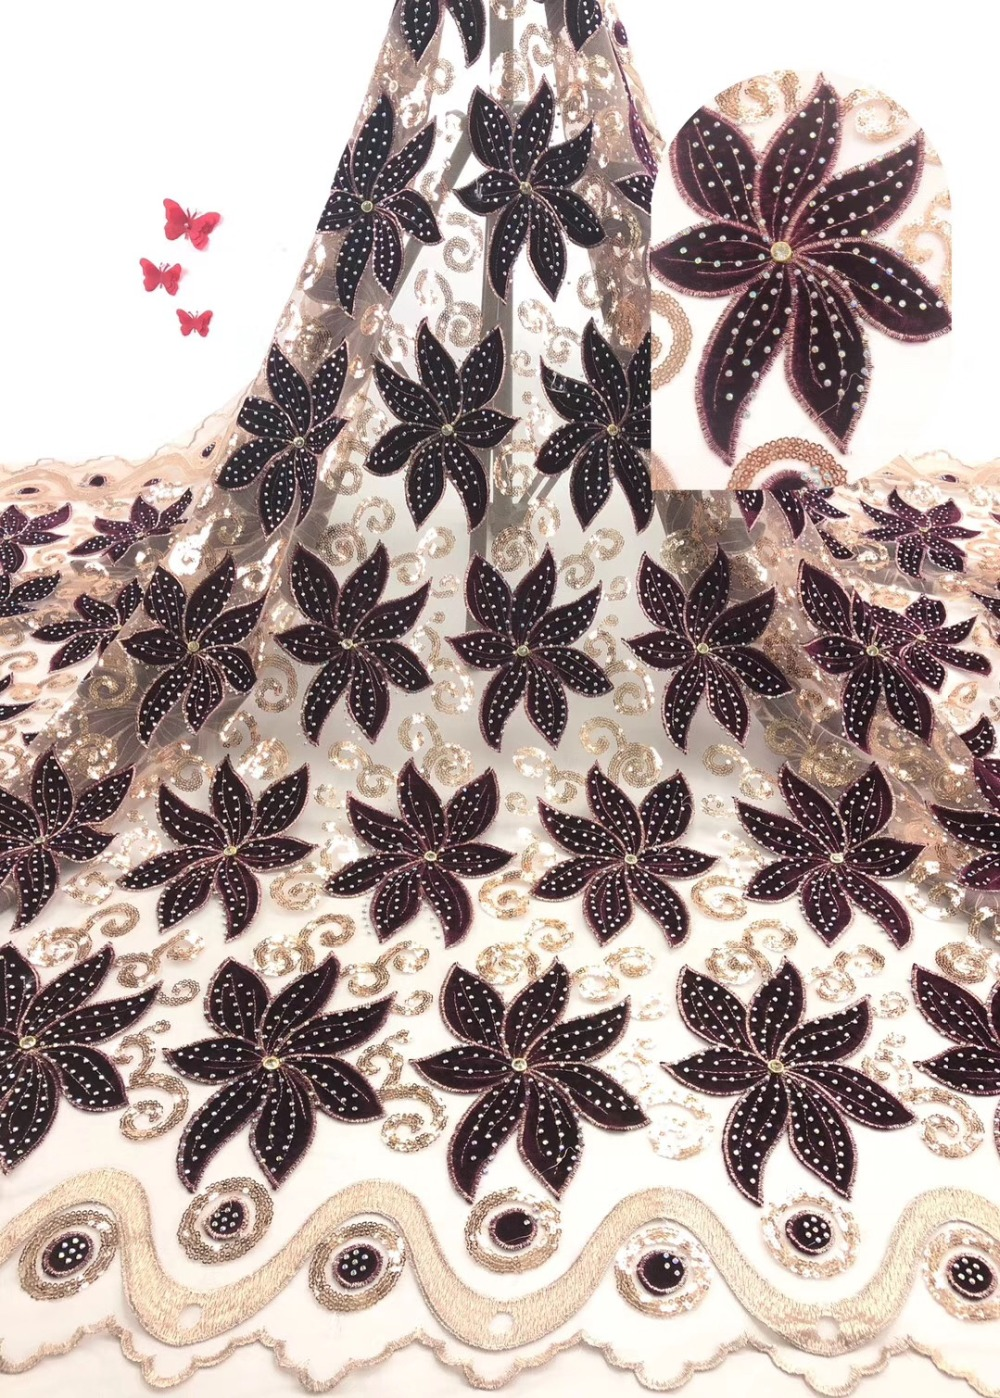 Nigerian Tulle velvet Lace 2019 Hot Selling French Lace Fabric For Wedding Dress Embroidery African Laces FabricNigerian Tulle velvet Lace 2019 Hot Selling French Lace Fabric For Wedding Dress Embroidery African Laces Fabric